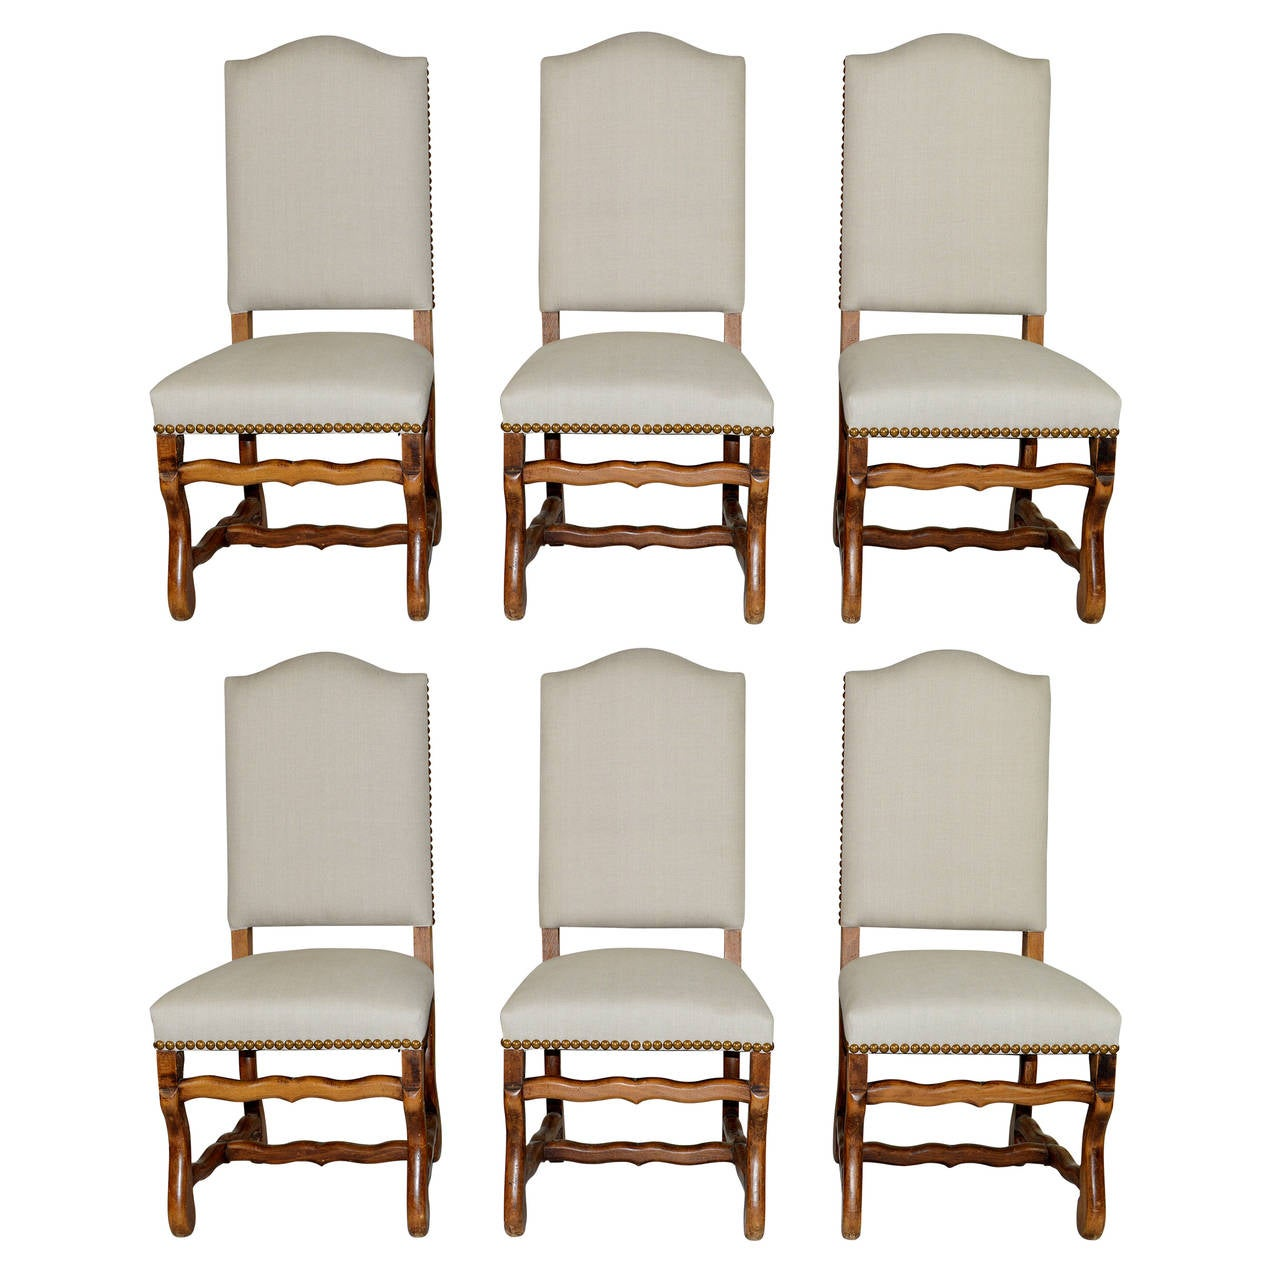 Louis The 14th Furniture Set Of Six French Louis Xiv Style Dining Chairs At 1stdibs